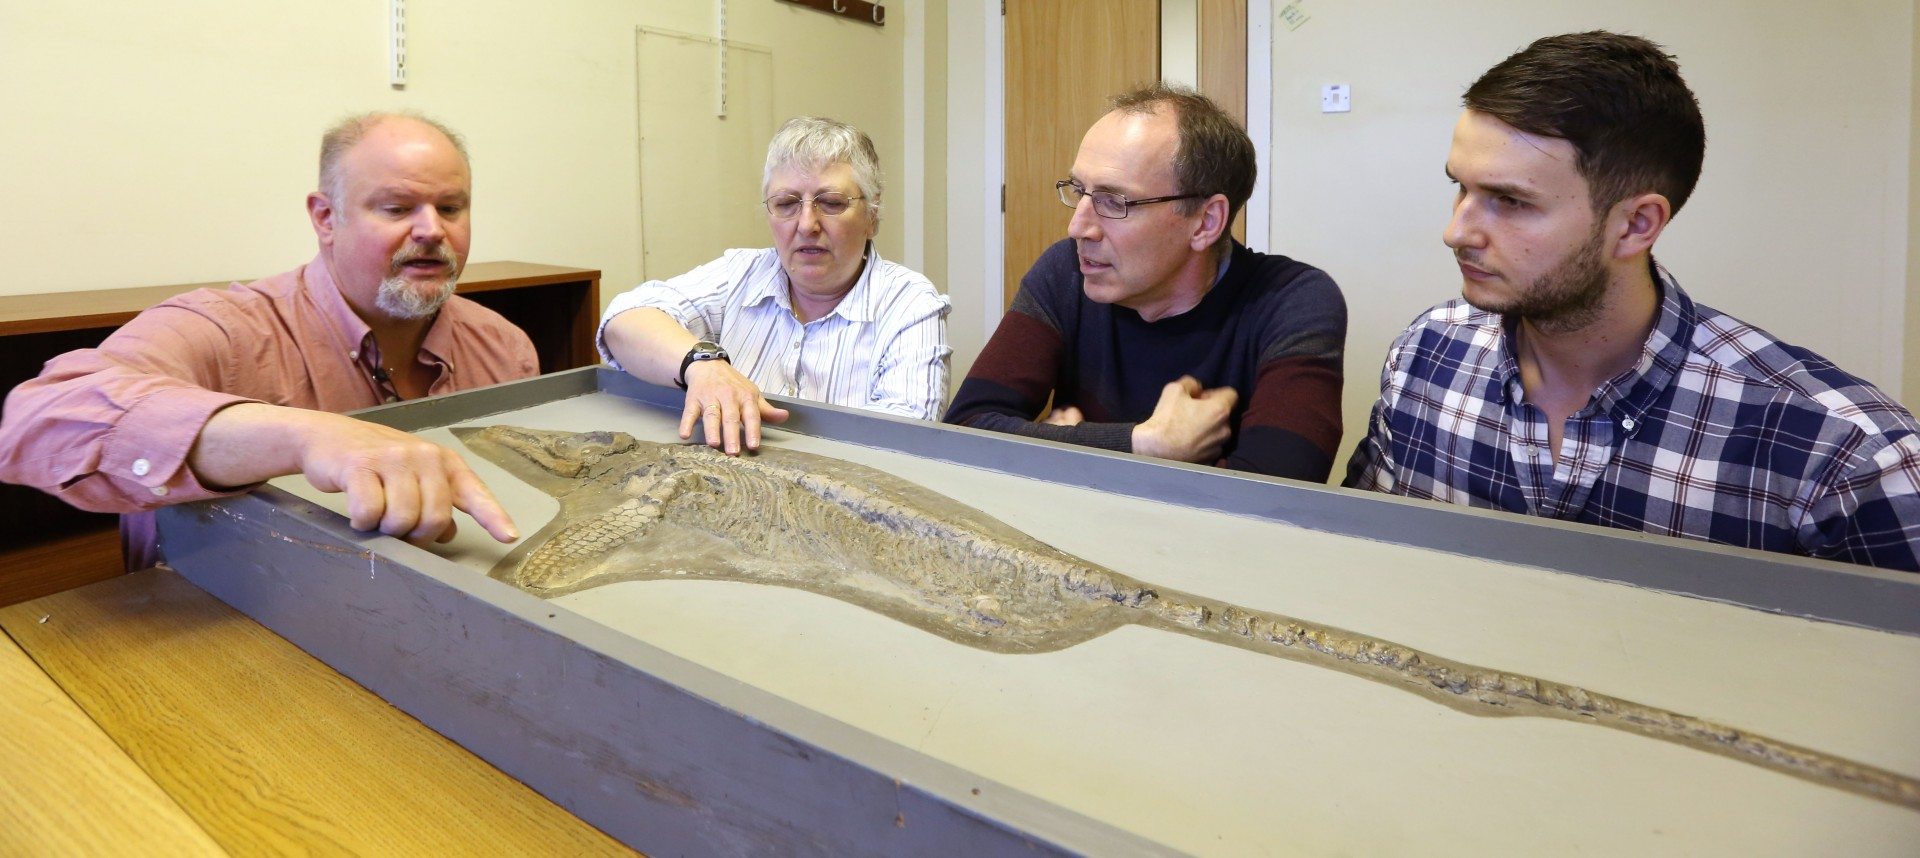 Bill Wahl, Prof. Judy Massare, Dr David Large & Dean Lomax study the new species of ichthyosaur at The University of Nottingham (c) University of Nottingham